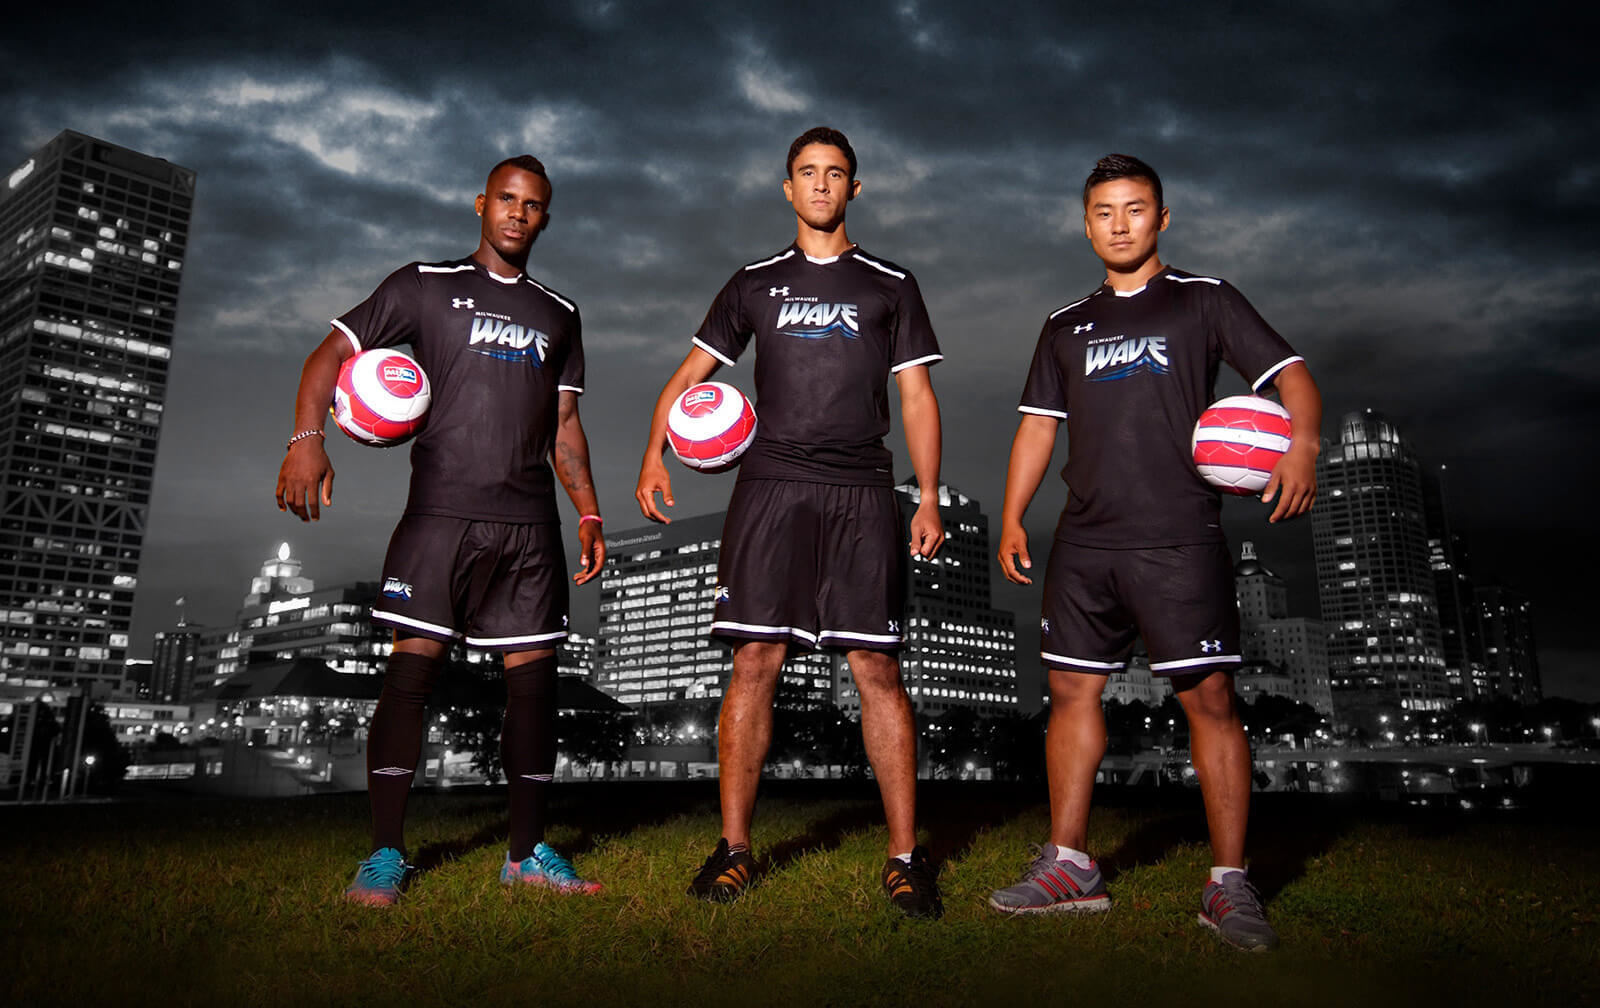 iNET photographs Soccer Players for the Milwaukee Wave